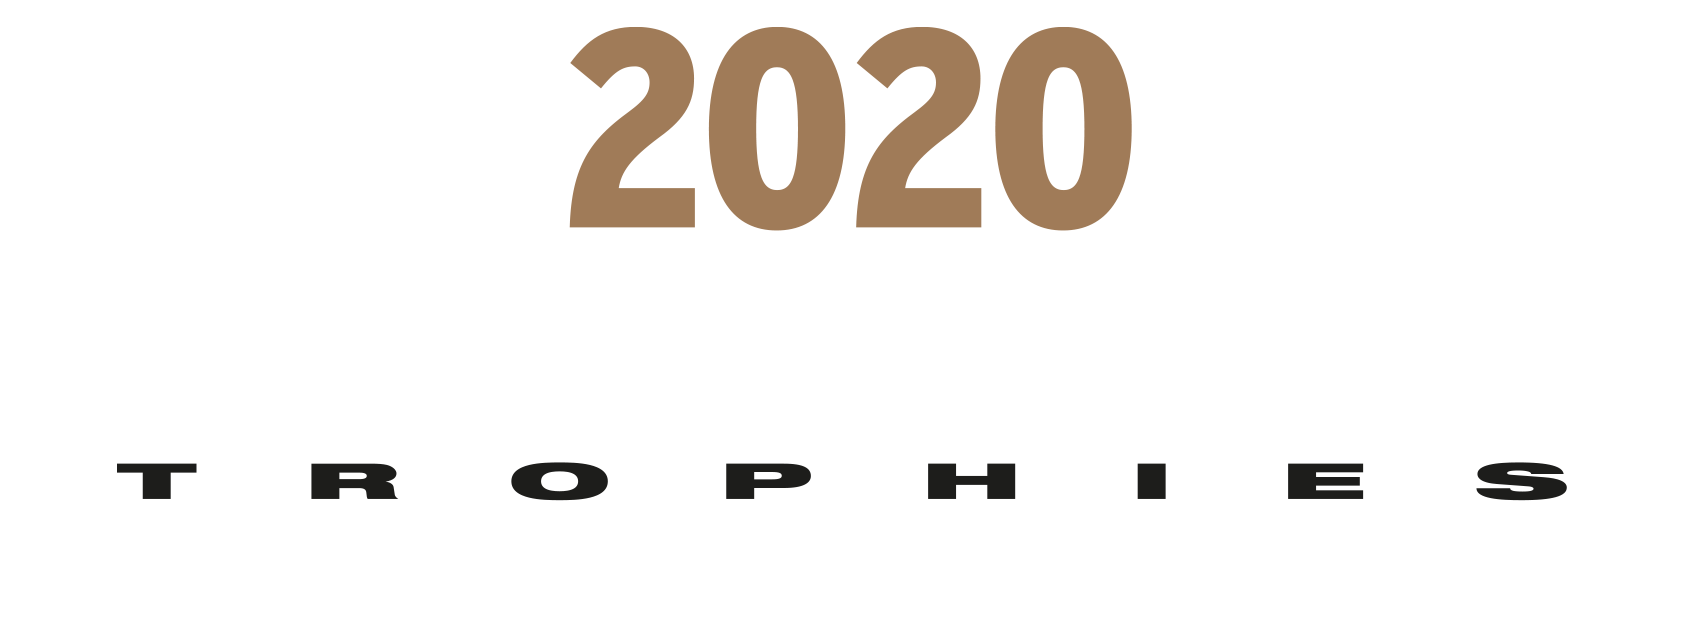 logo-world-yachts-trophies-2020-19e-edition-blanc